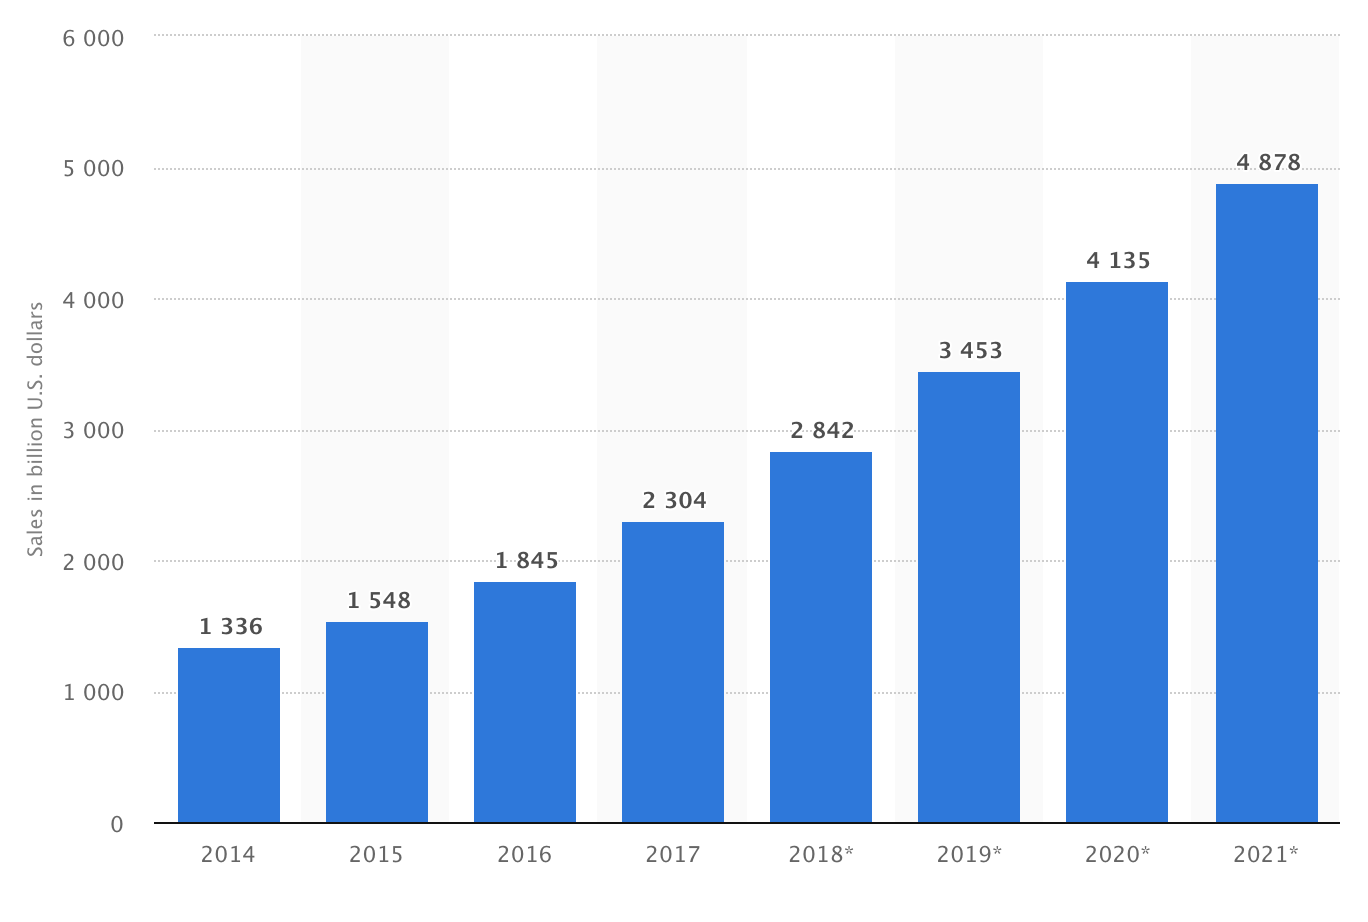 Retail e-commerce sales worldwide from 2014 to 2021 (in billion U.S. dollars)